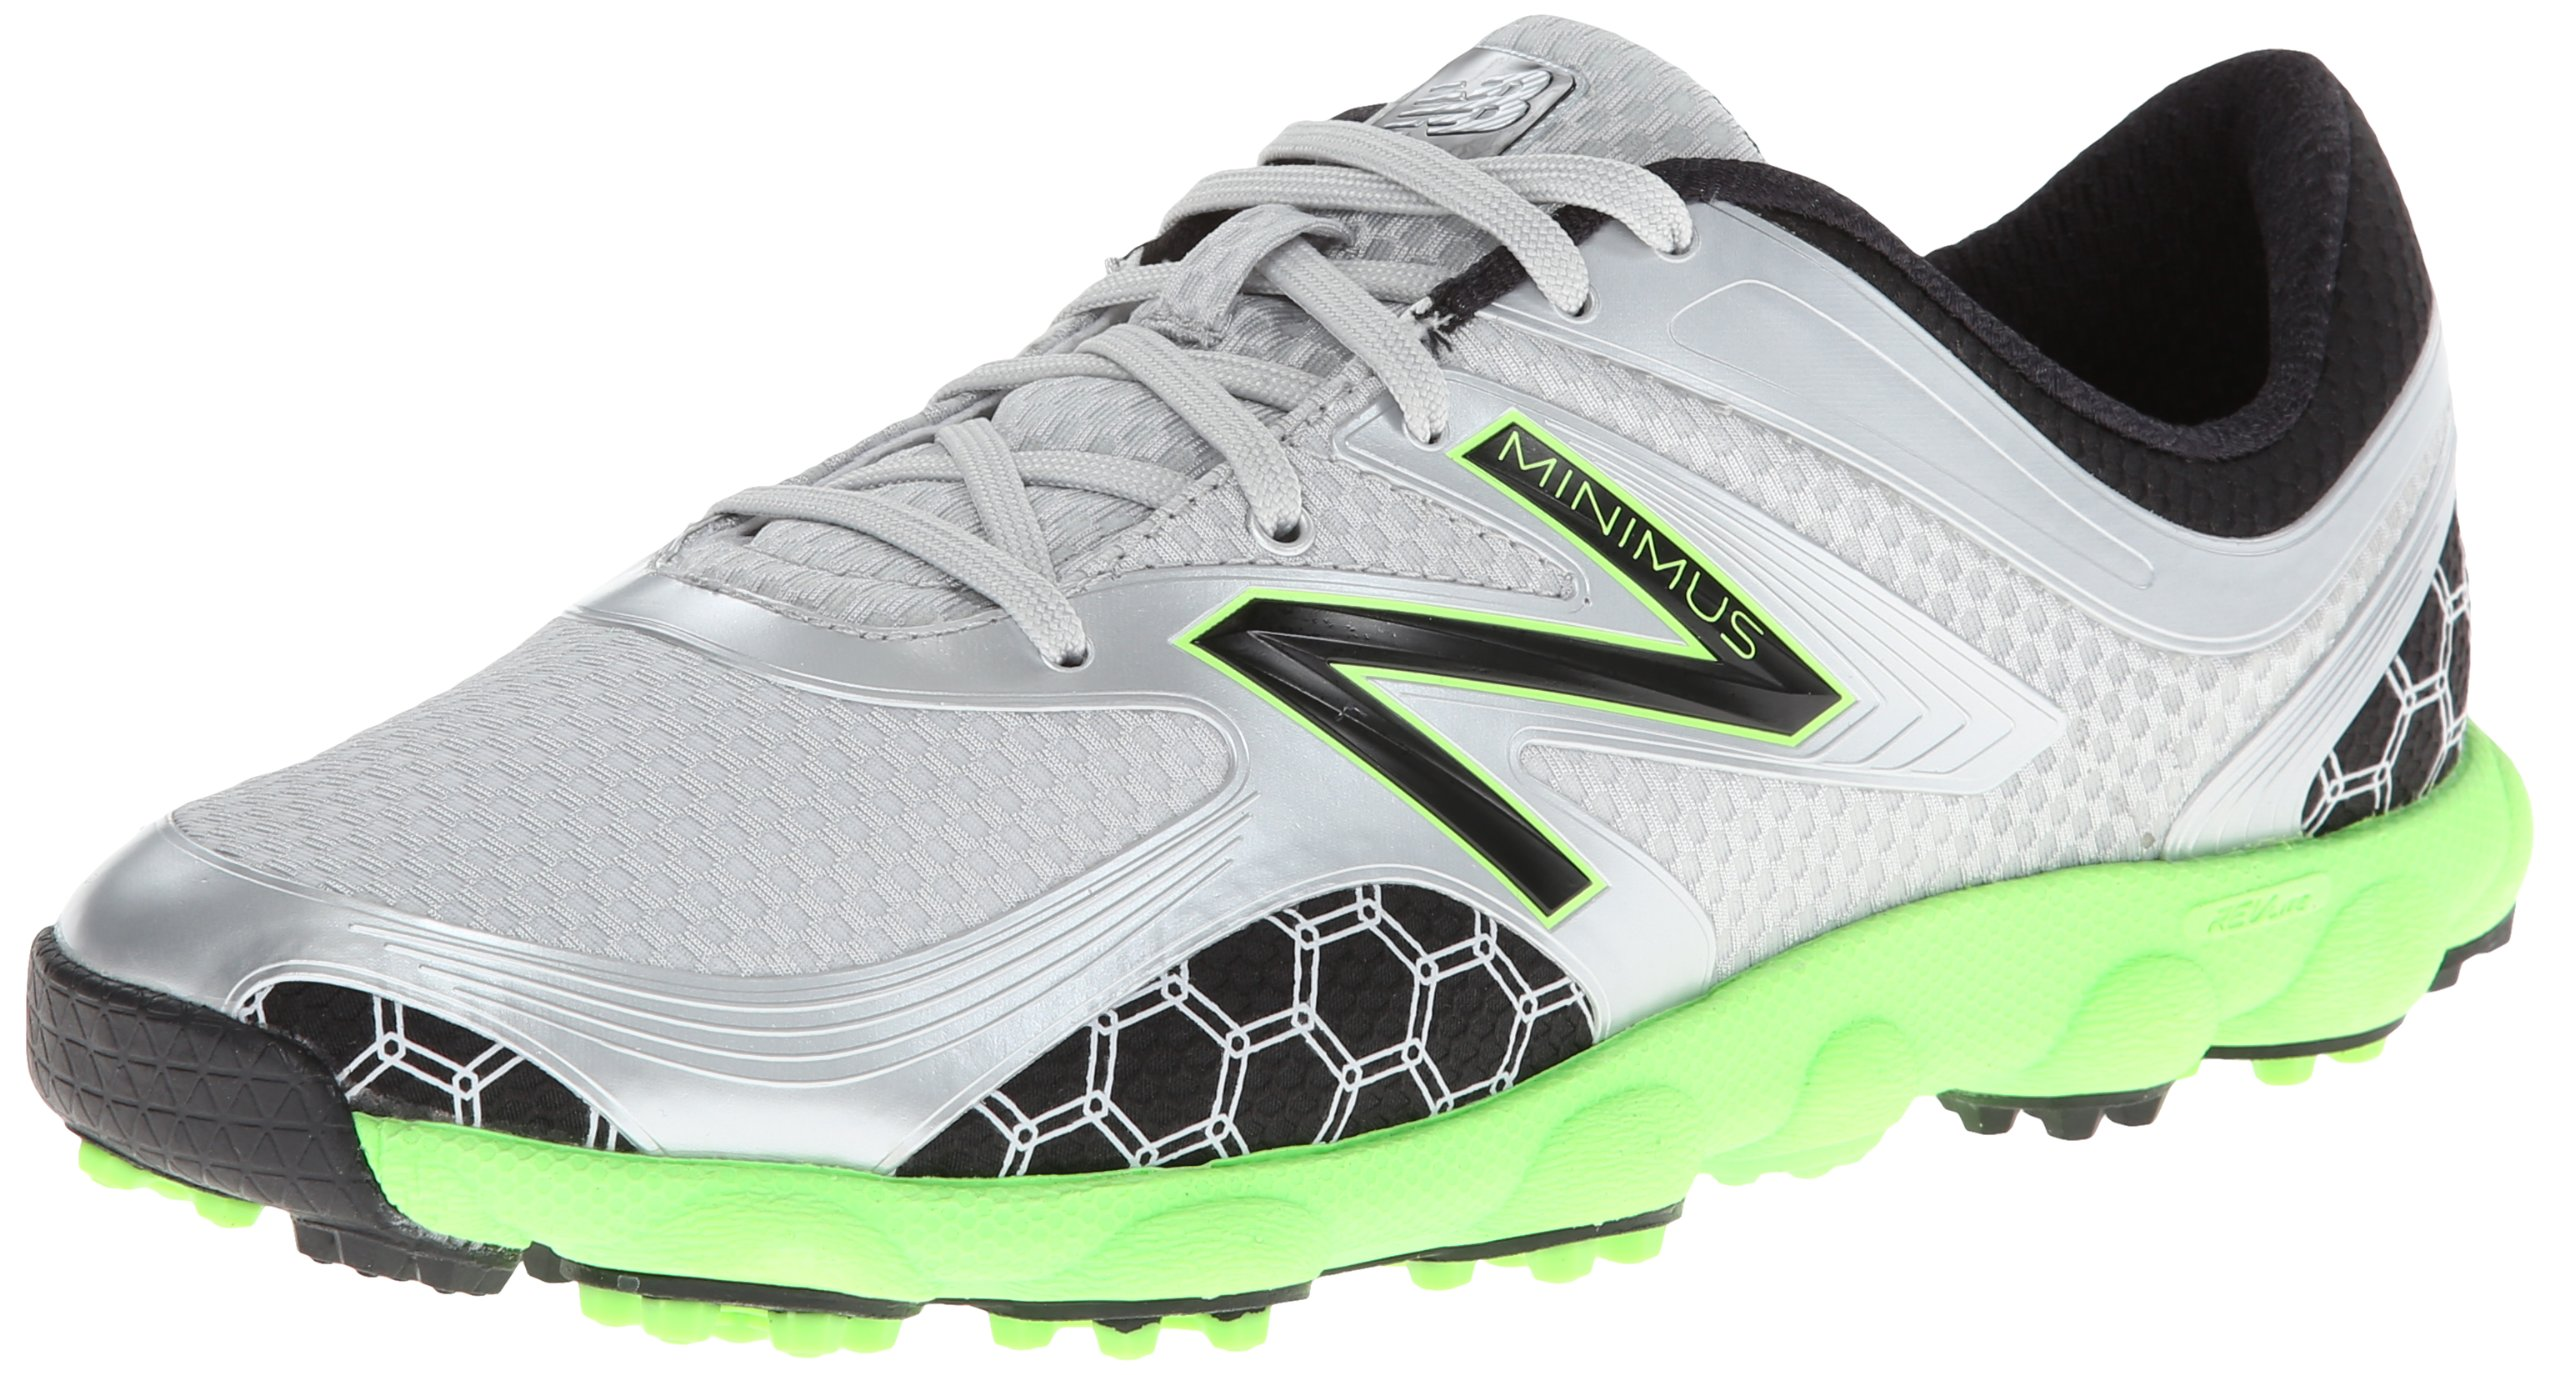 New Balance Men's Minimus Sport Golf Shoe,Green/Grey,10 D US